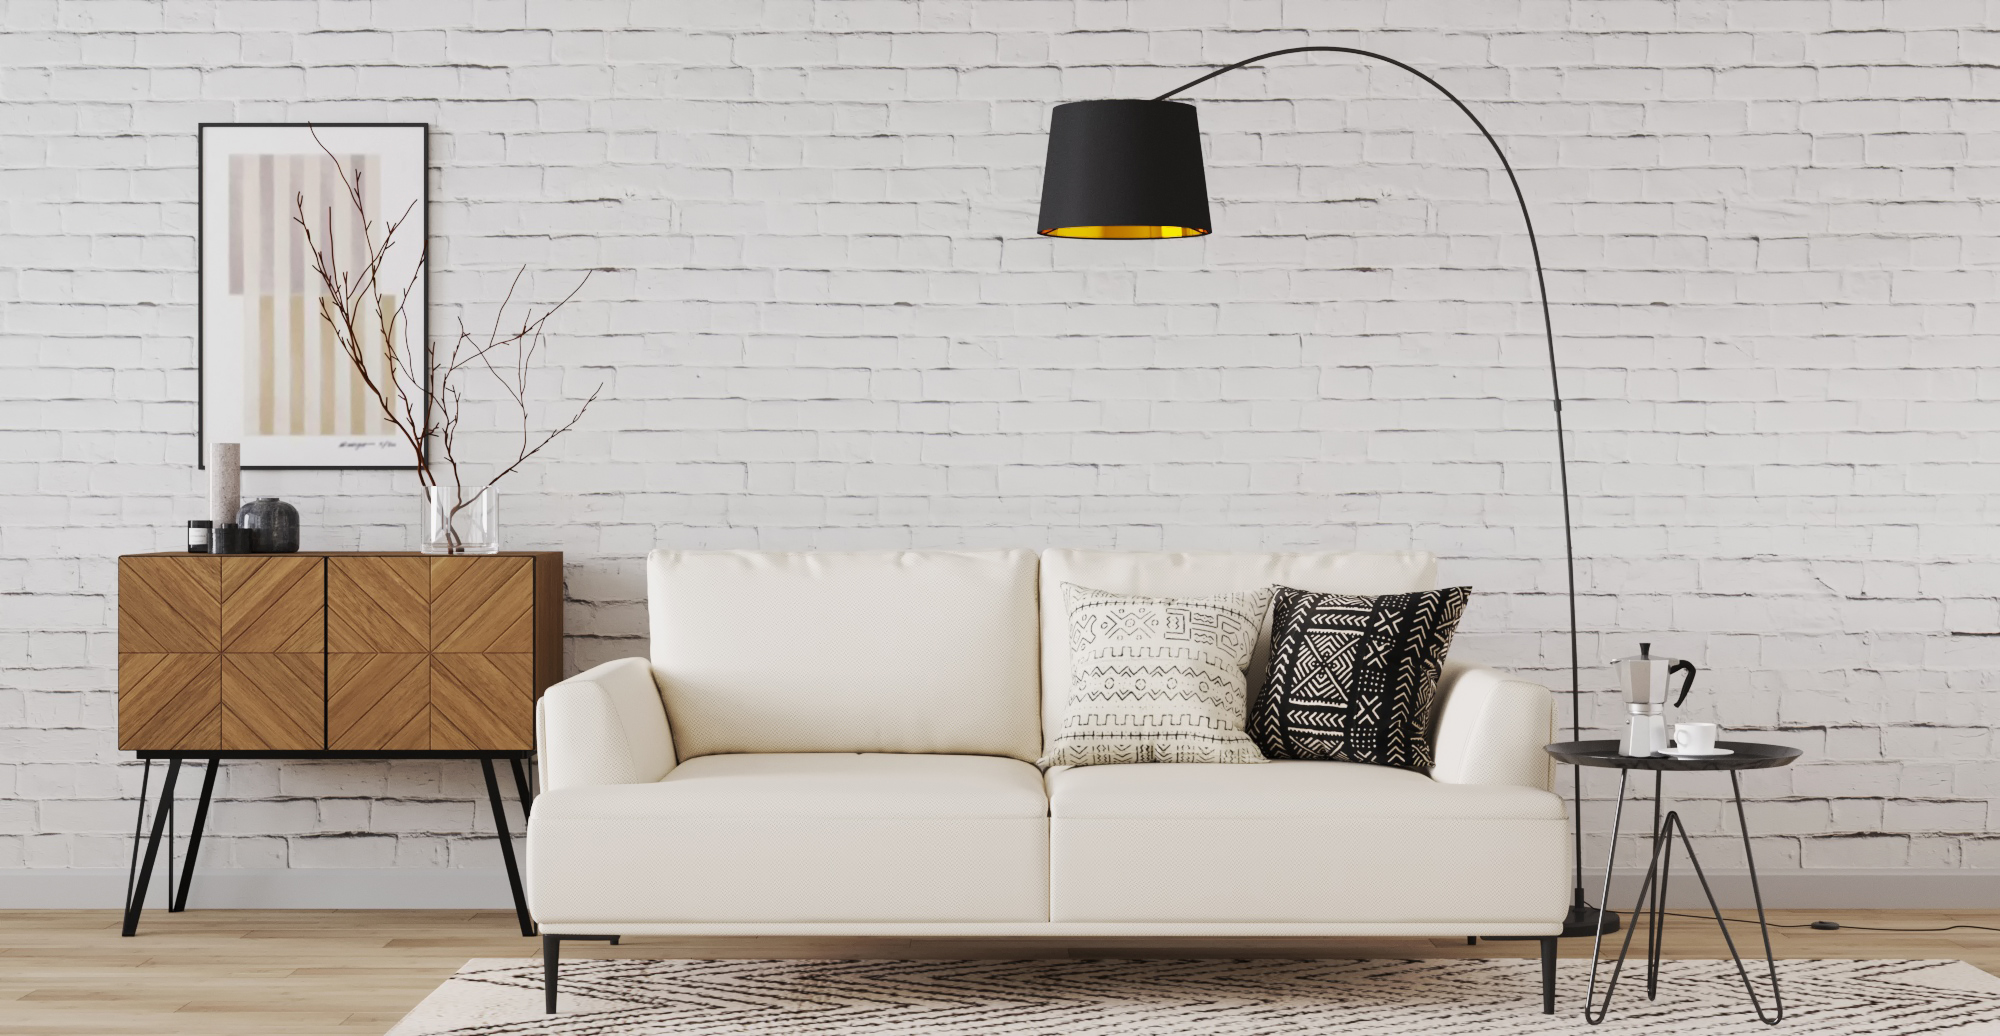 Brosa Como Motion 3 Seater Sofa styled in modern contemporary living room